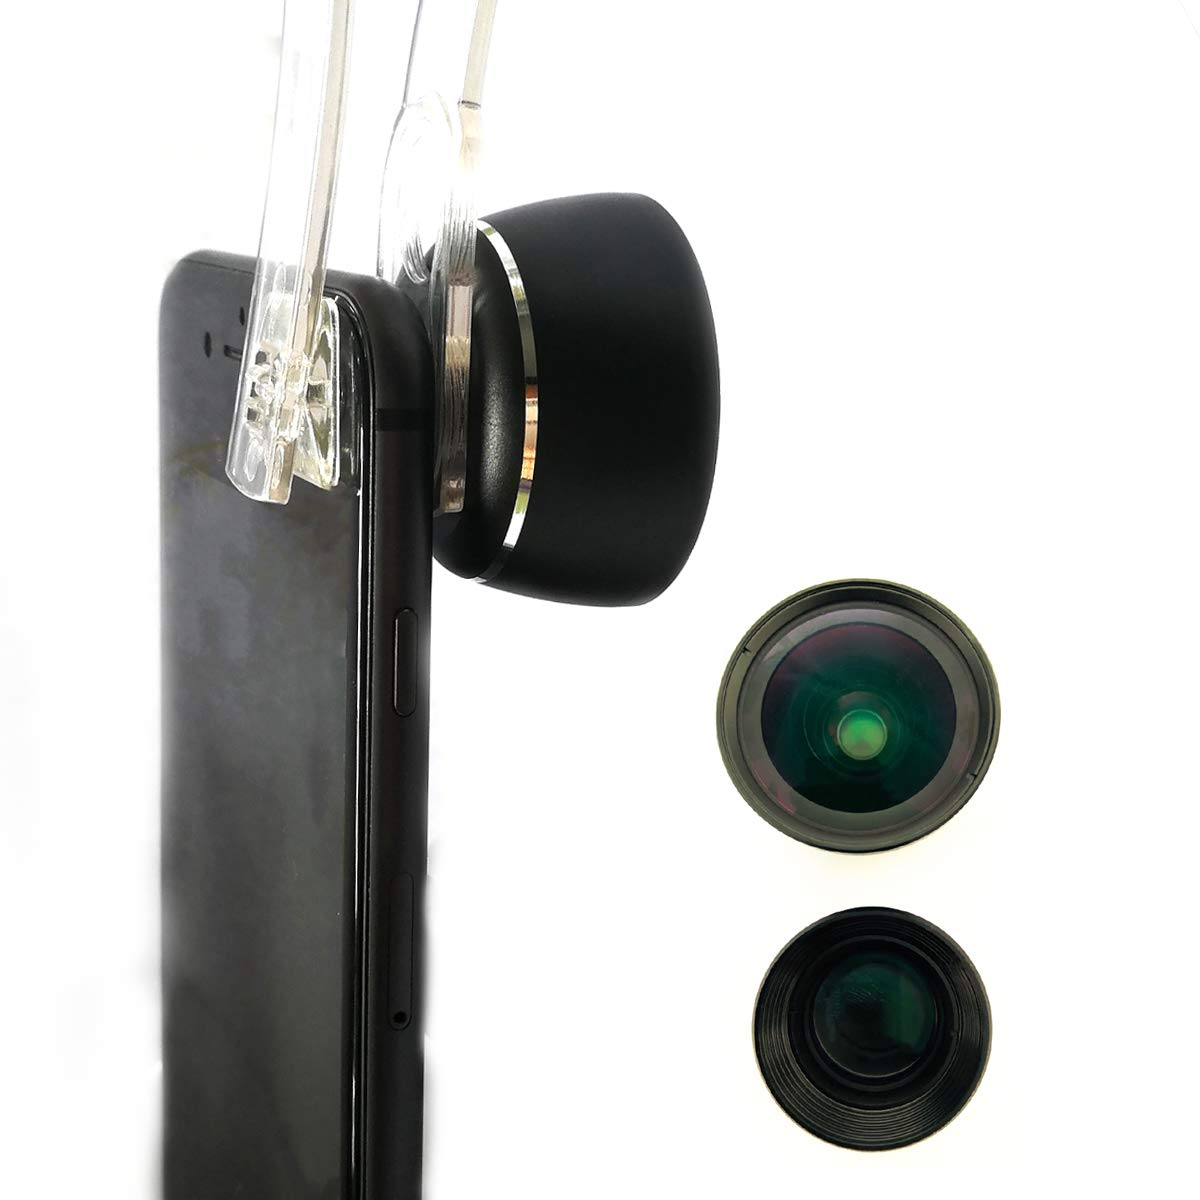 Moveski PL3 Cell Phone Camera Lens 3 Piece Package 105° HD Wide Angle 185° Fisheye 30~80mm Telephoto Macro Compatible with iPhone Xs RS X 8 Plus Android Smart Phones